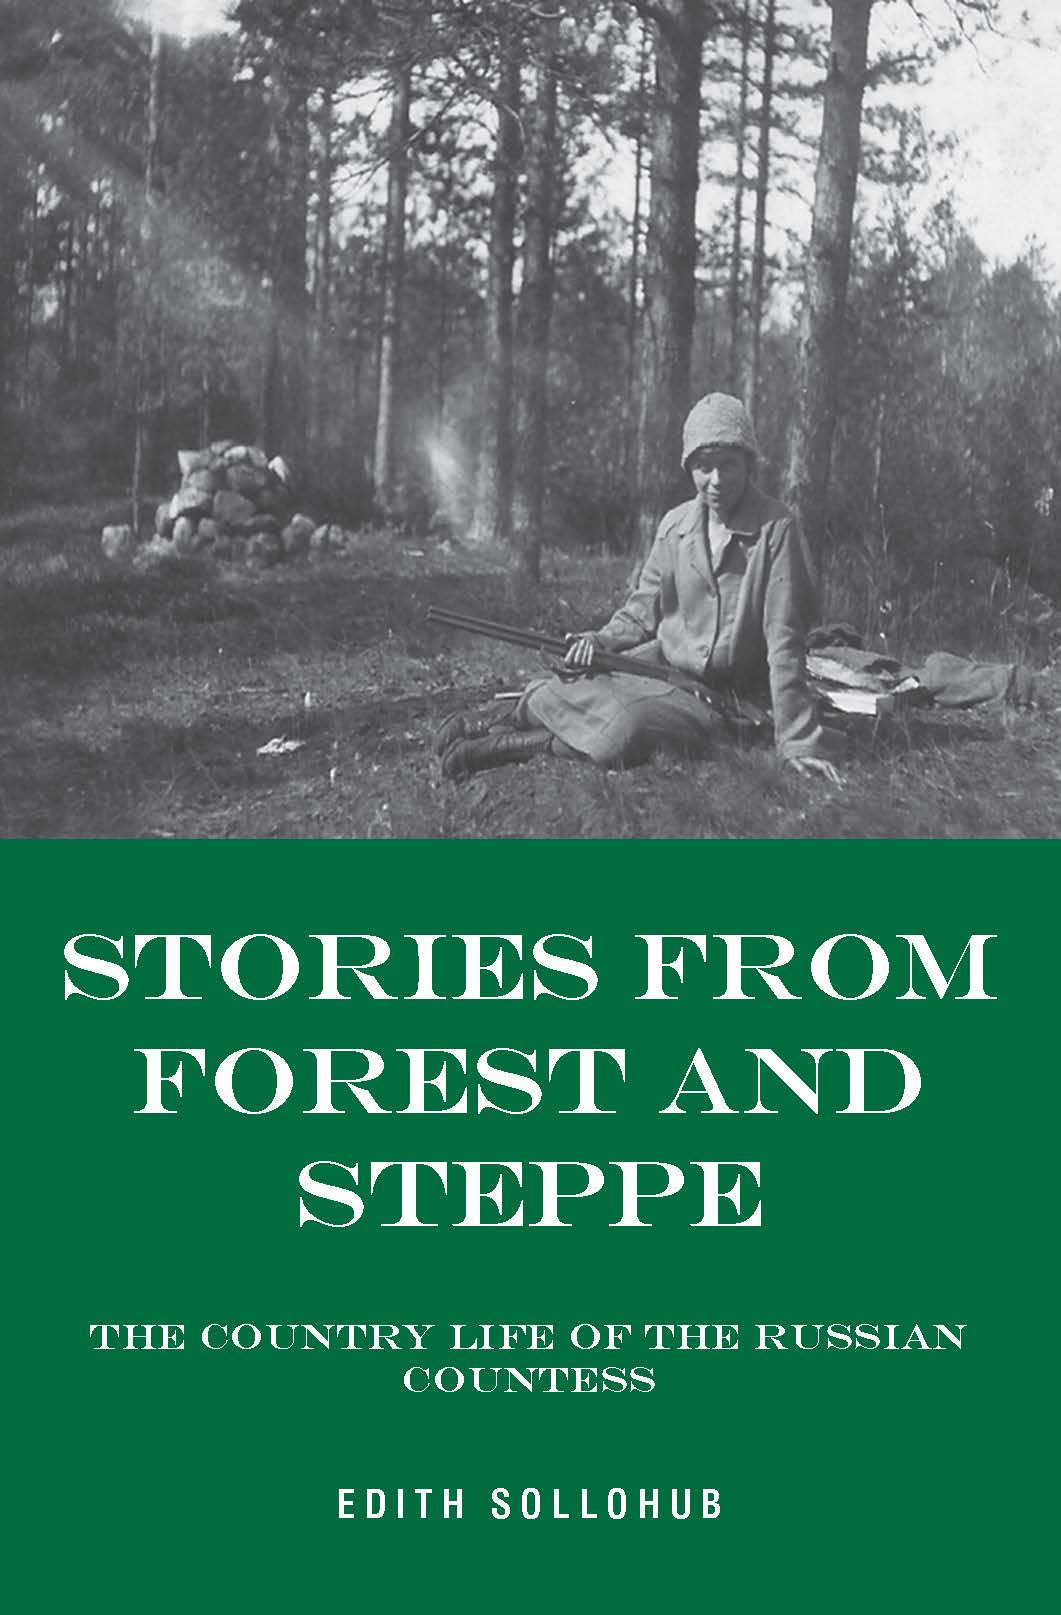 Stories from Forest and Steppe: The Country Life of the